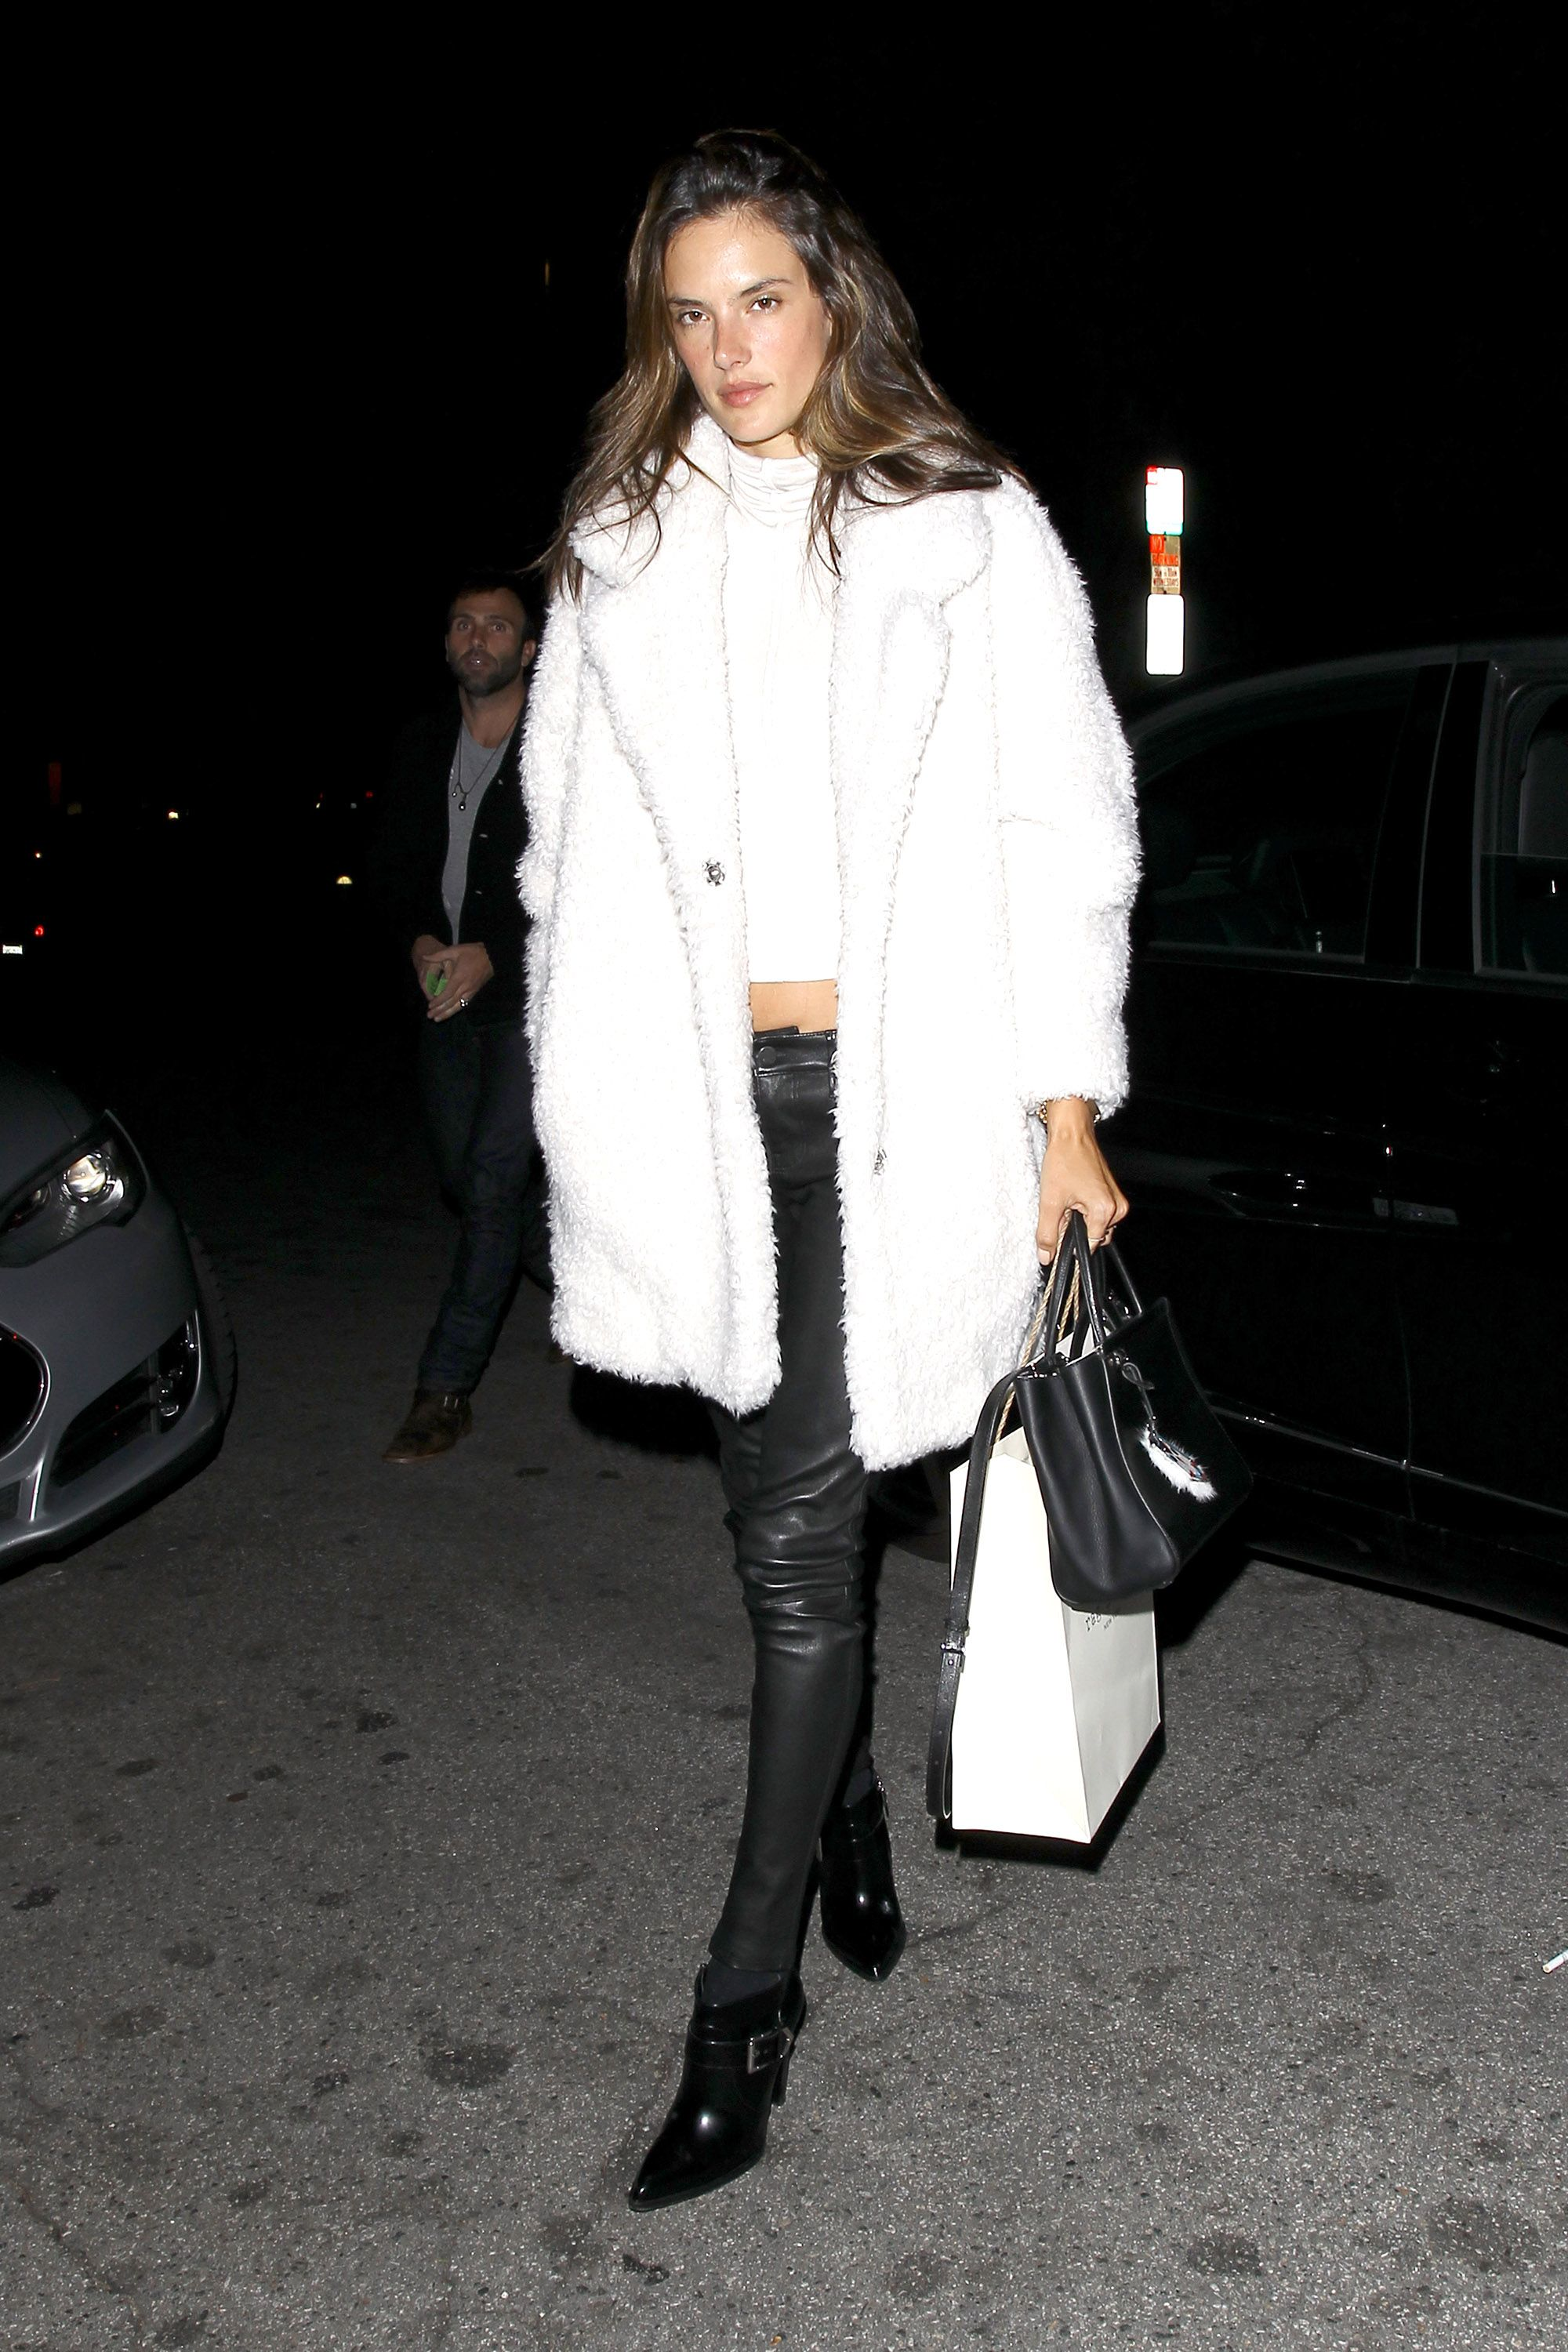 """**NO Australia, New Zealand** West Hollywood, CA - Alessandra Ambrosio and her boyfriend Jamie Mazur leaving """"Kings of Leon"""" frontman Caleb Followill's star-studded birthday party celebrated at the """"Sunset Marquis"""" hotel in West Hollywood. **NO Australia, New Zealand** AKM-GSI          January 14, 2015**NO Australia, New Zealand**To License These Photos, Please Contact :Steve Ginsburg(310) 505-8447(323) 423-9397steve@akmgsi.comsales@akmgsi.comorMaria Buda(917) 242-1505mbuda@akmgsi.comginsburgspalyinc@gmail.com8"""